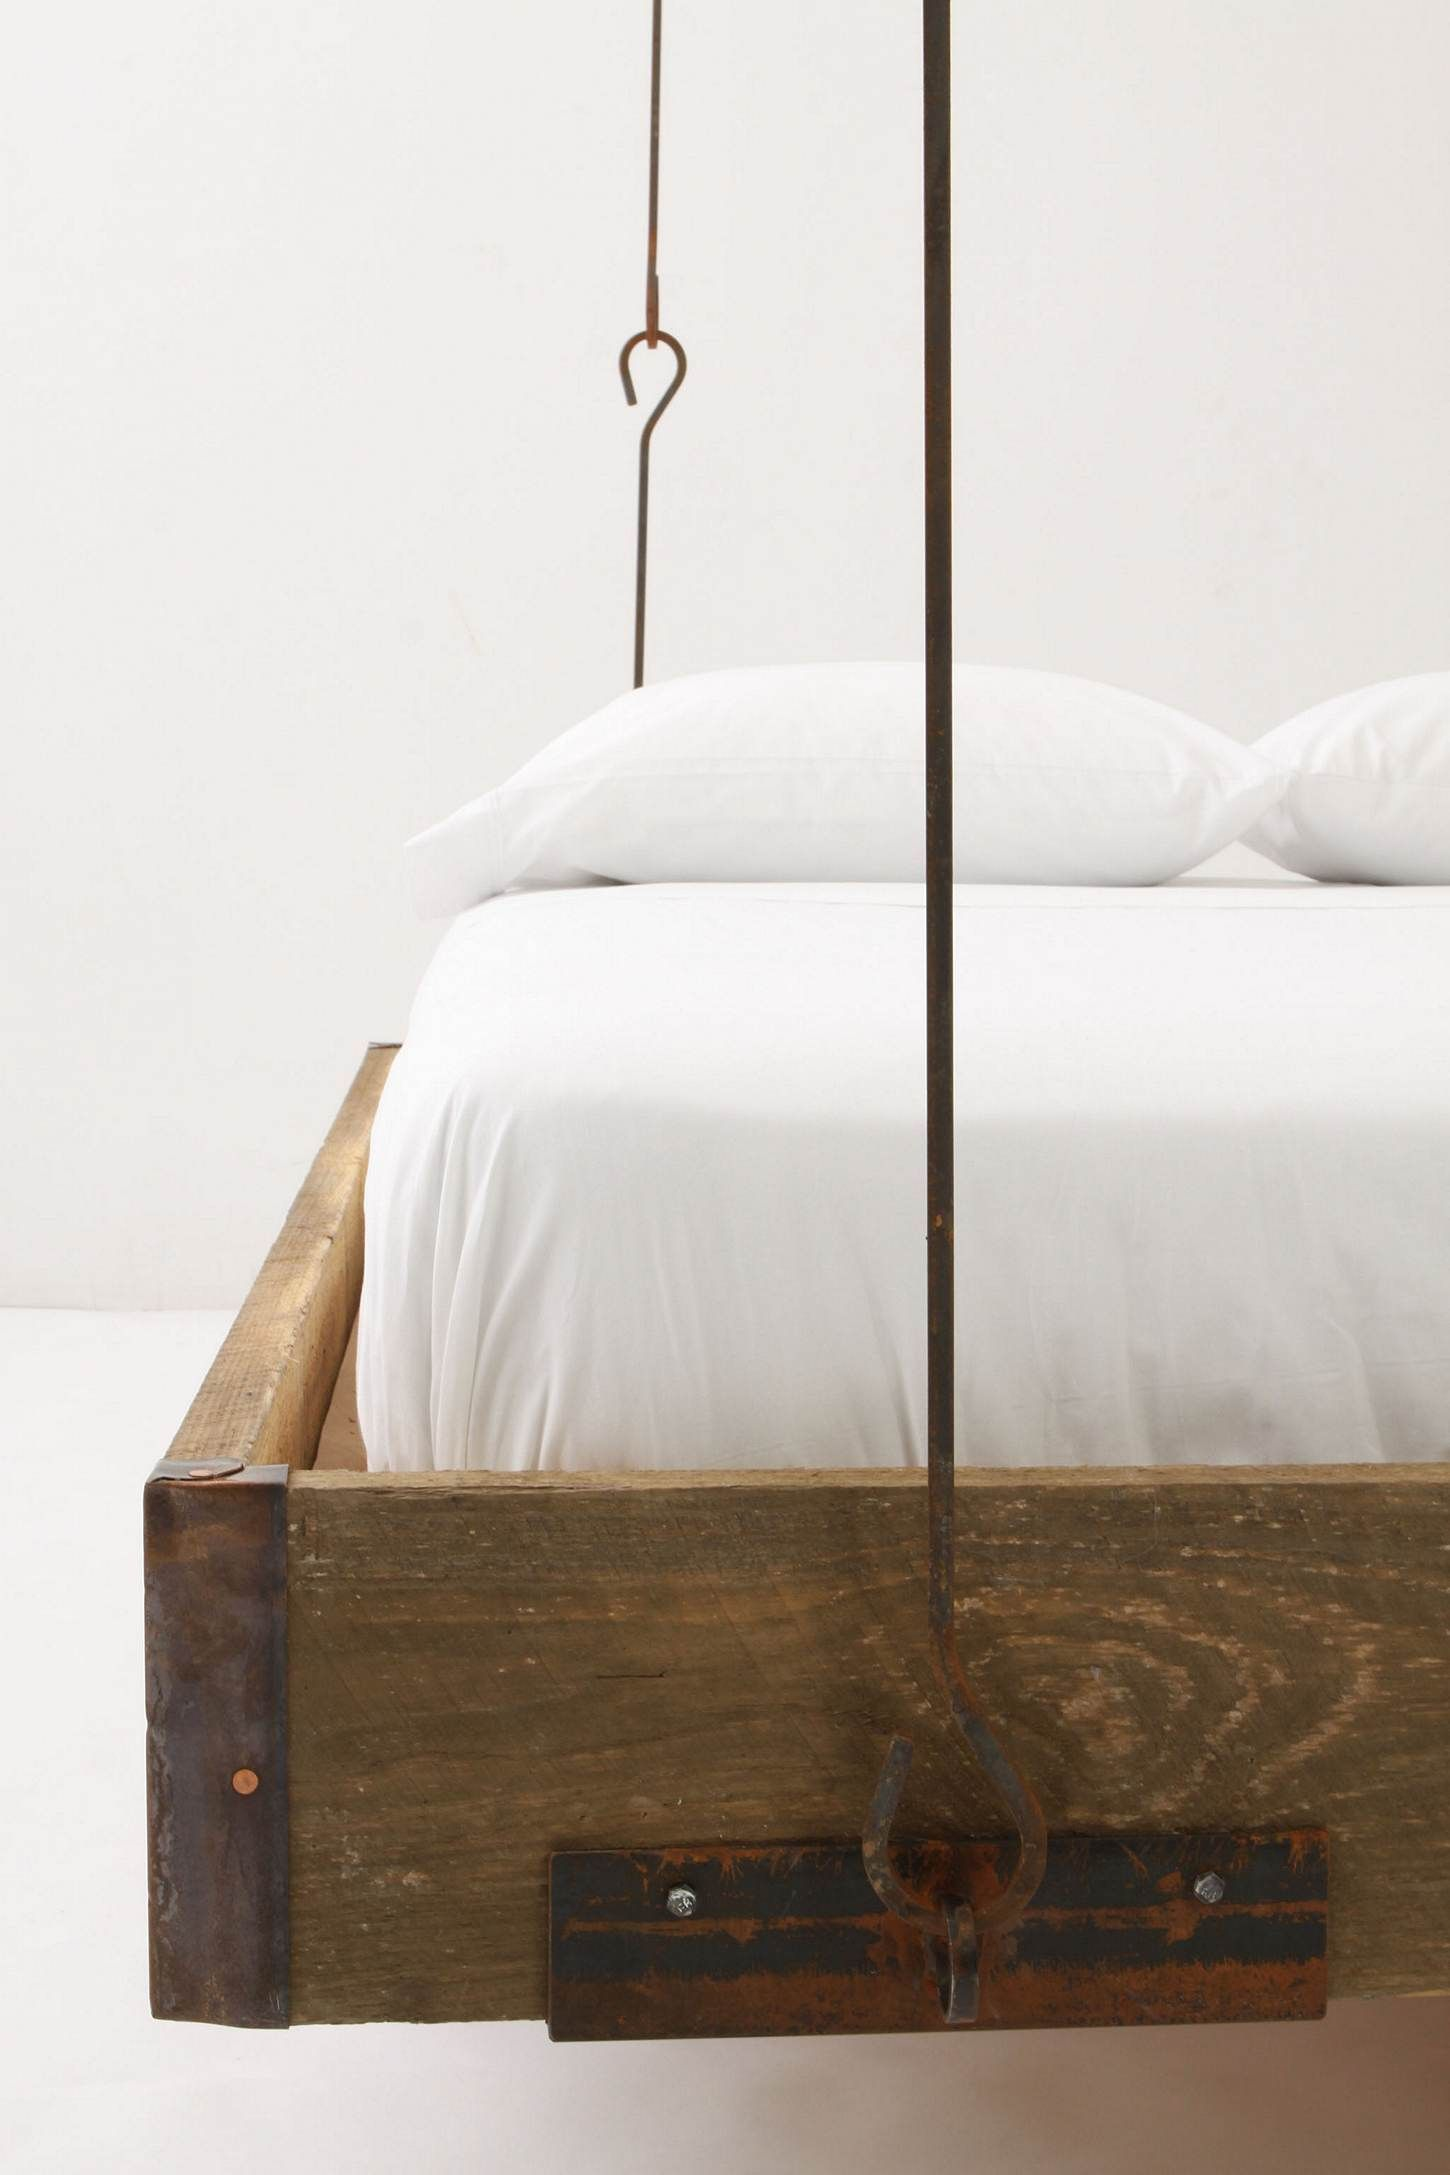 hanging wood bed frame anthropology or a DIY project